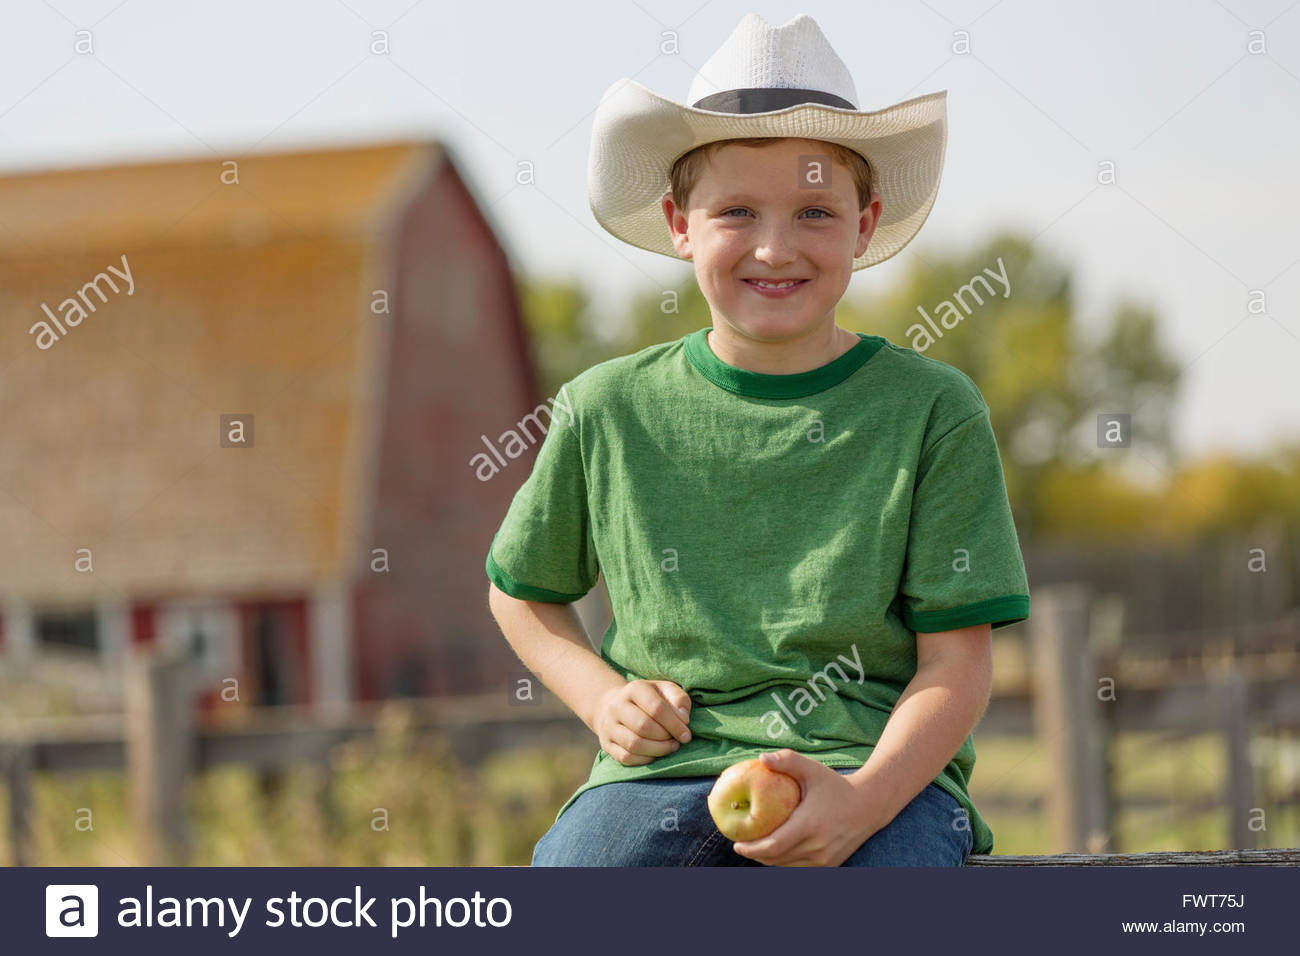 Young boy with cowboy hat sitting on fence. - Stock Image